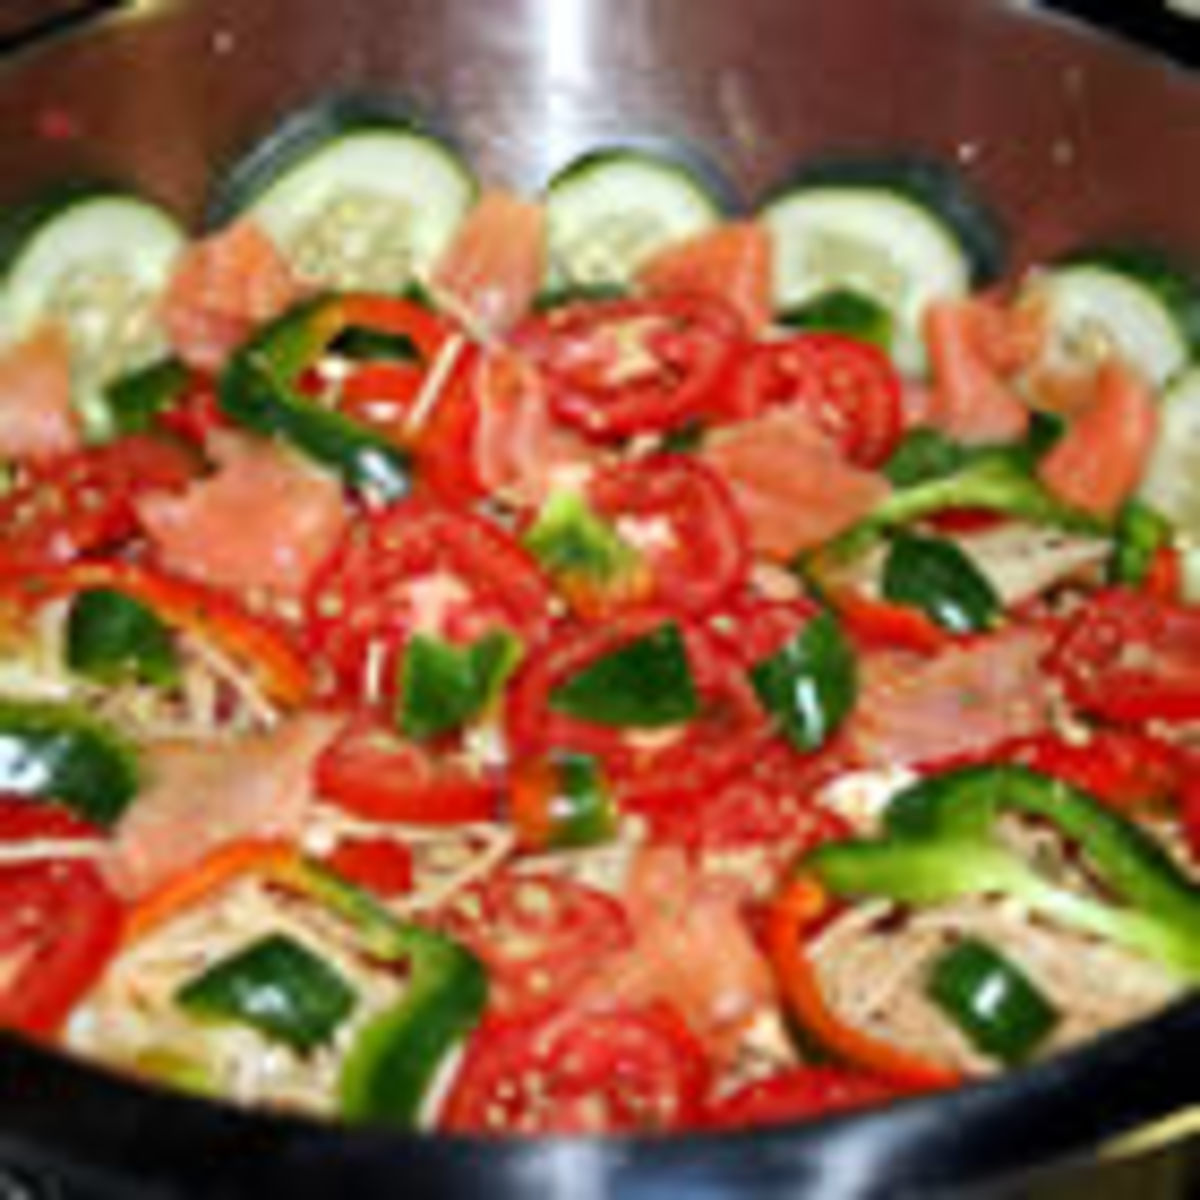 Smoked Salmon Pasta Salad (from Allrecipes)